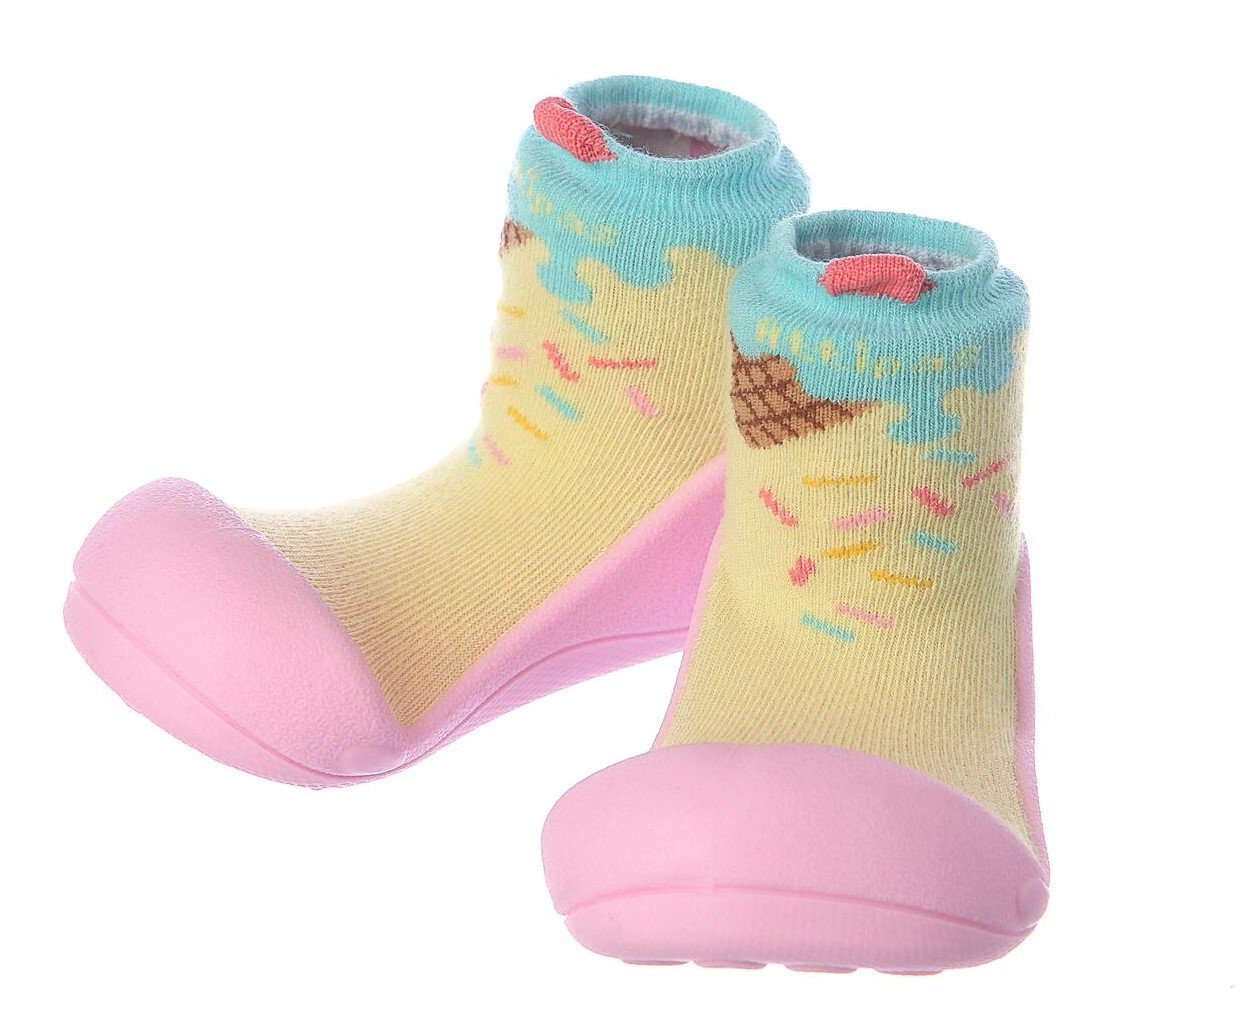 Attipas Best First Walker Shoes Baby Cotton Socks Shoes Non Toxic Safe Great Baby Registry Gifts (US Toddler 6.5, Ice Cream Pink)